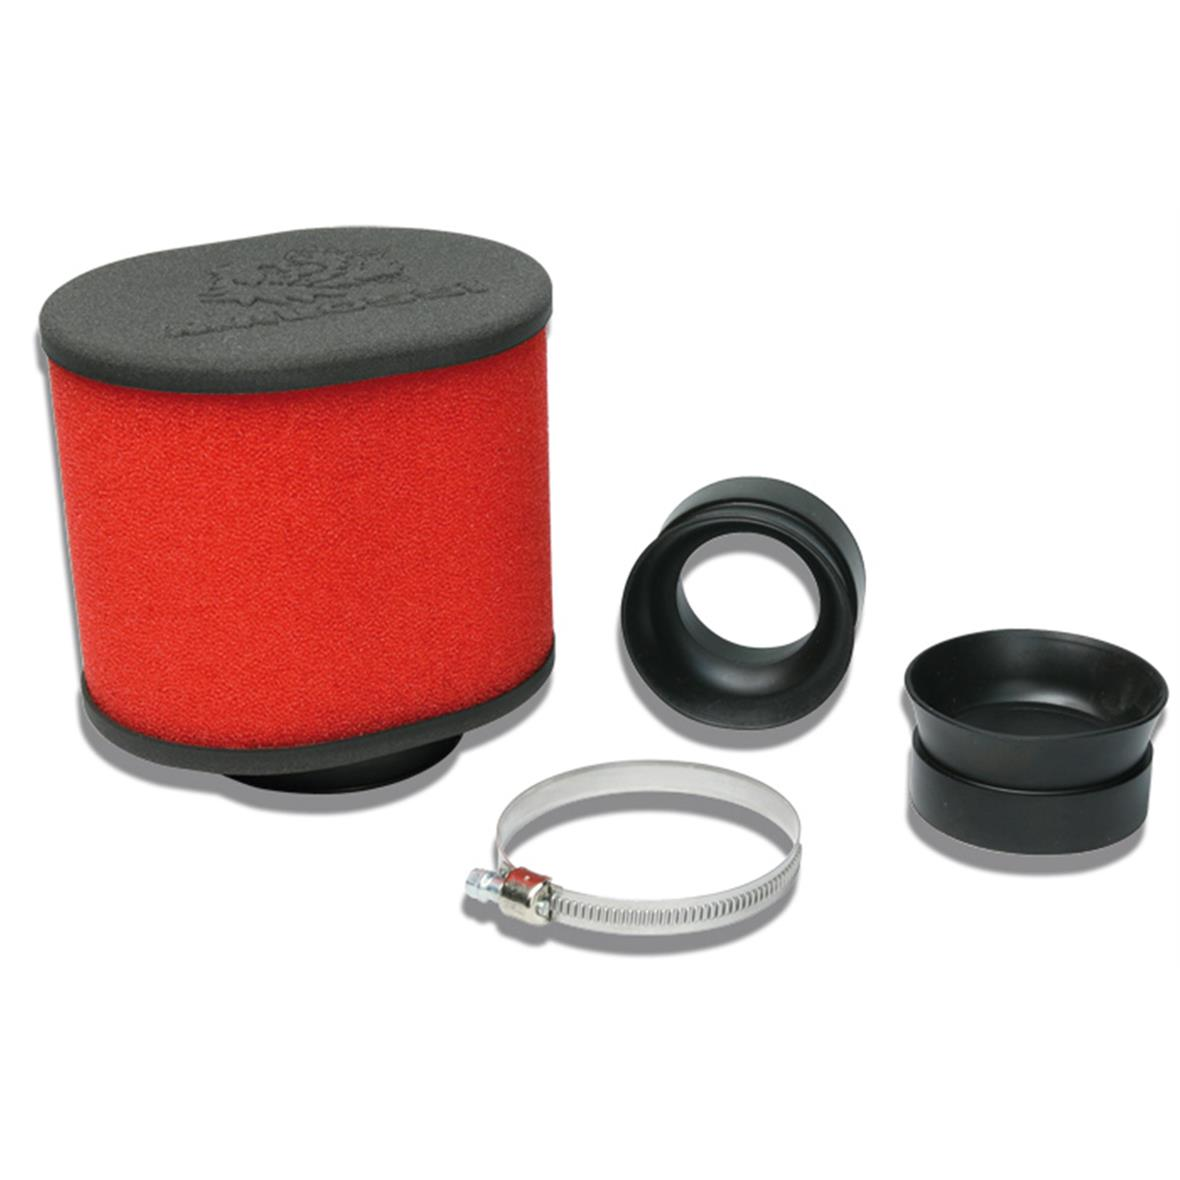 "Product Image for 'Racing Air Filter MALOSSI E15 ""Red Filter""Title'"